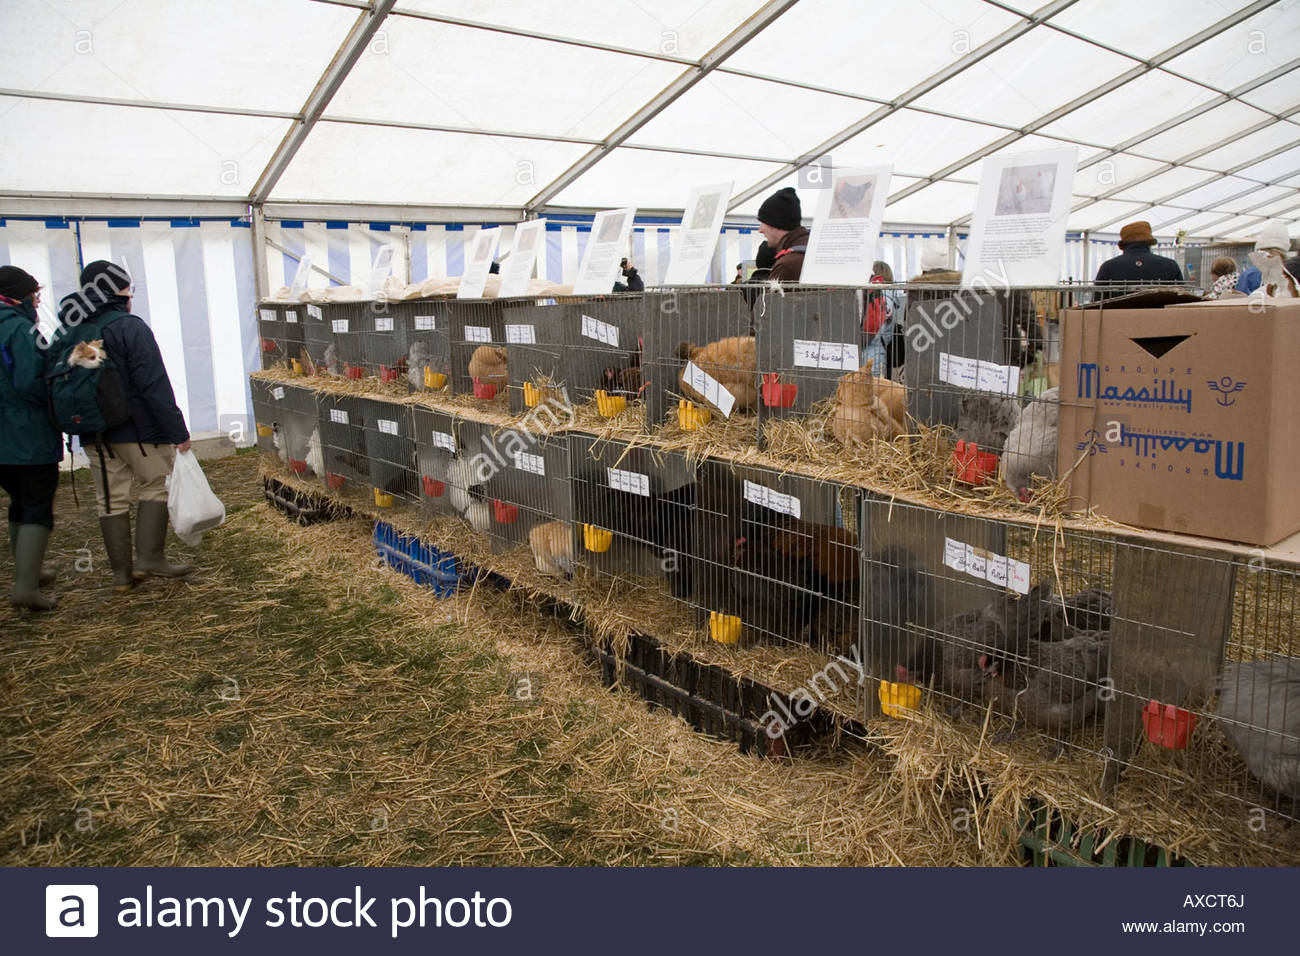 caged chickens for sale Thame Country Show 2008 - Stock Image